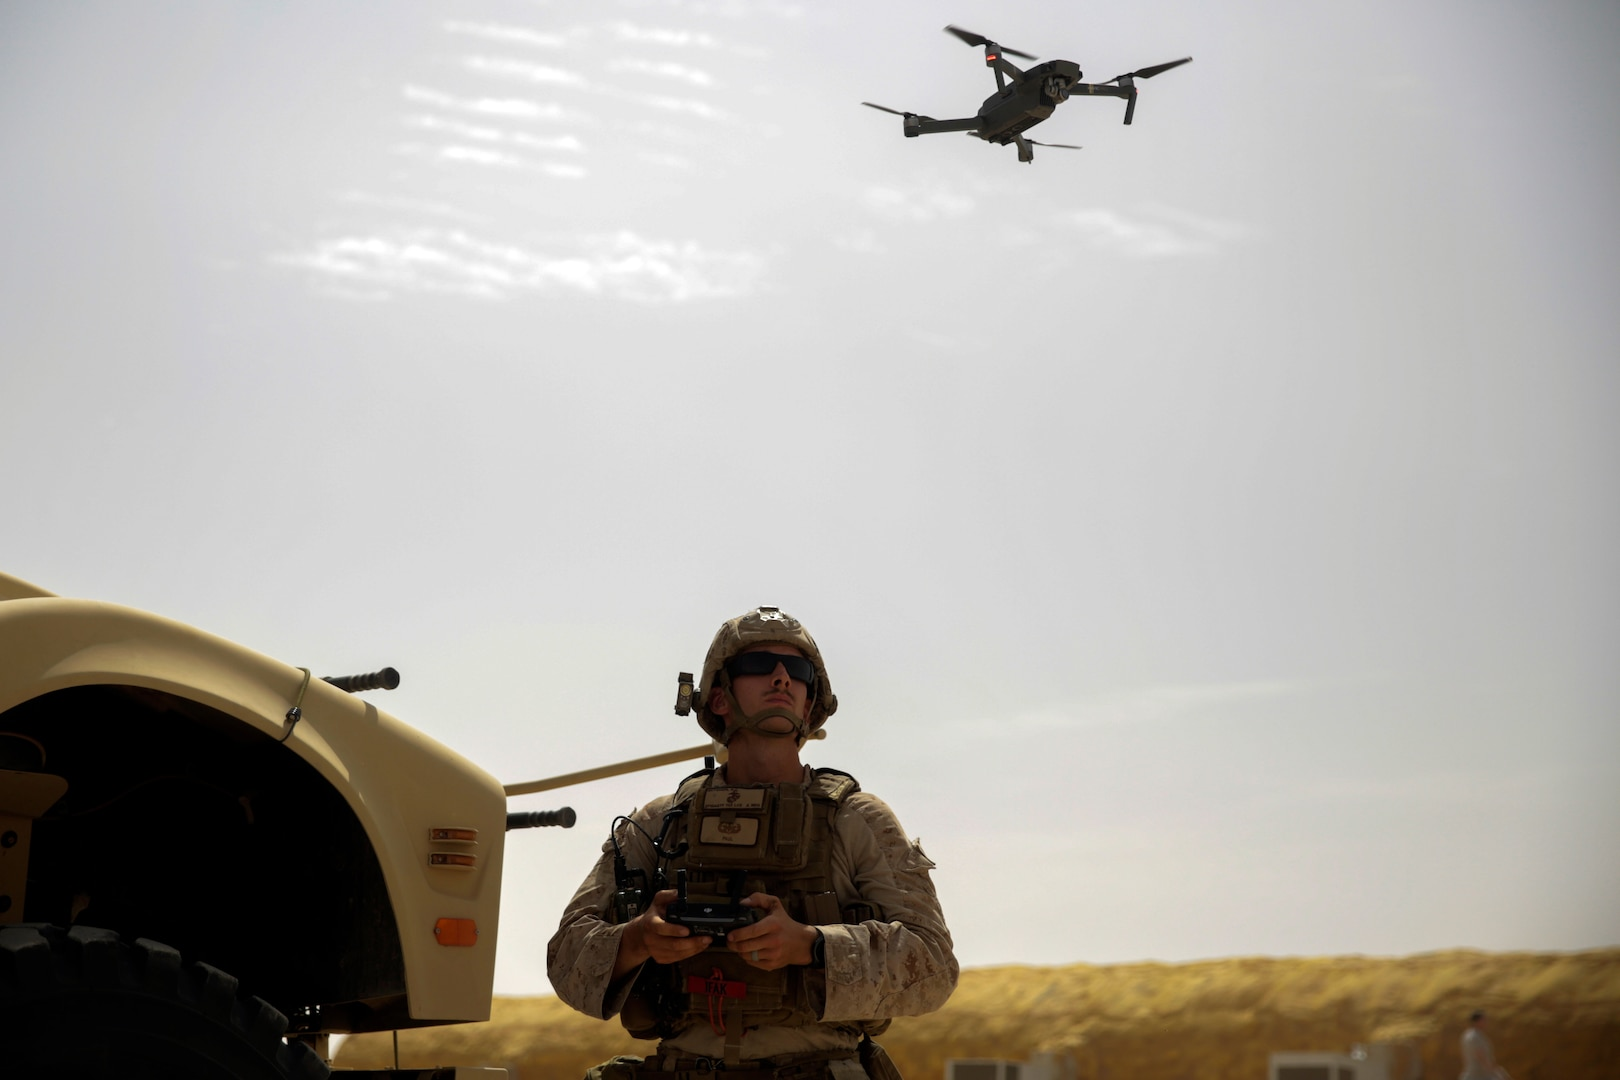 Explosive ordnance disposal technician flies DJI Mavic Pro Drone while forward deployed in Middle East, May 2017 (U.S. Marine Corps/Shellie Hall)